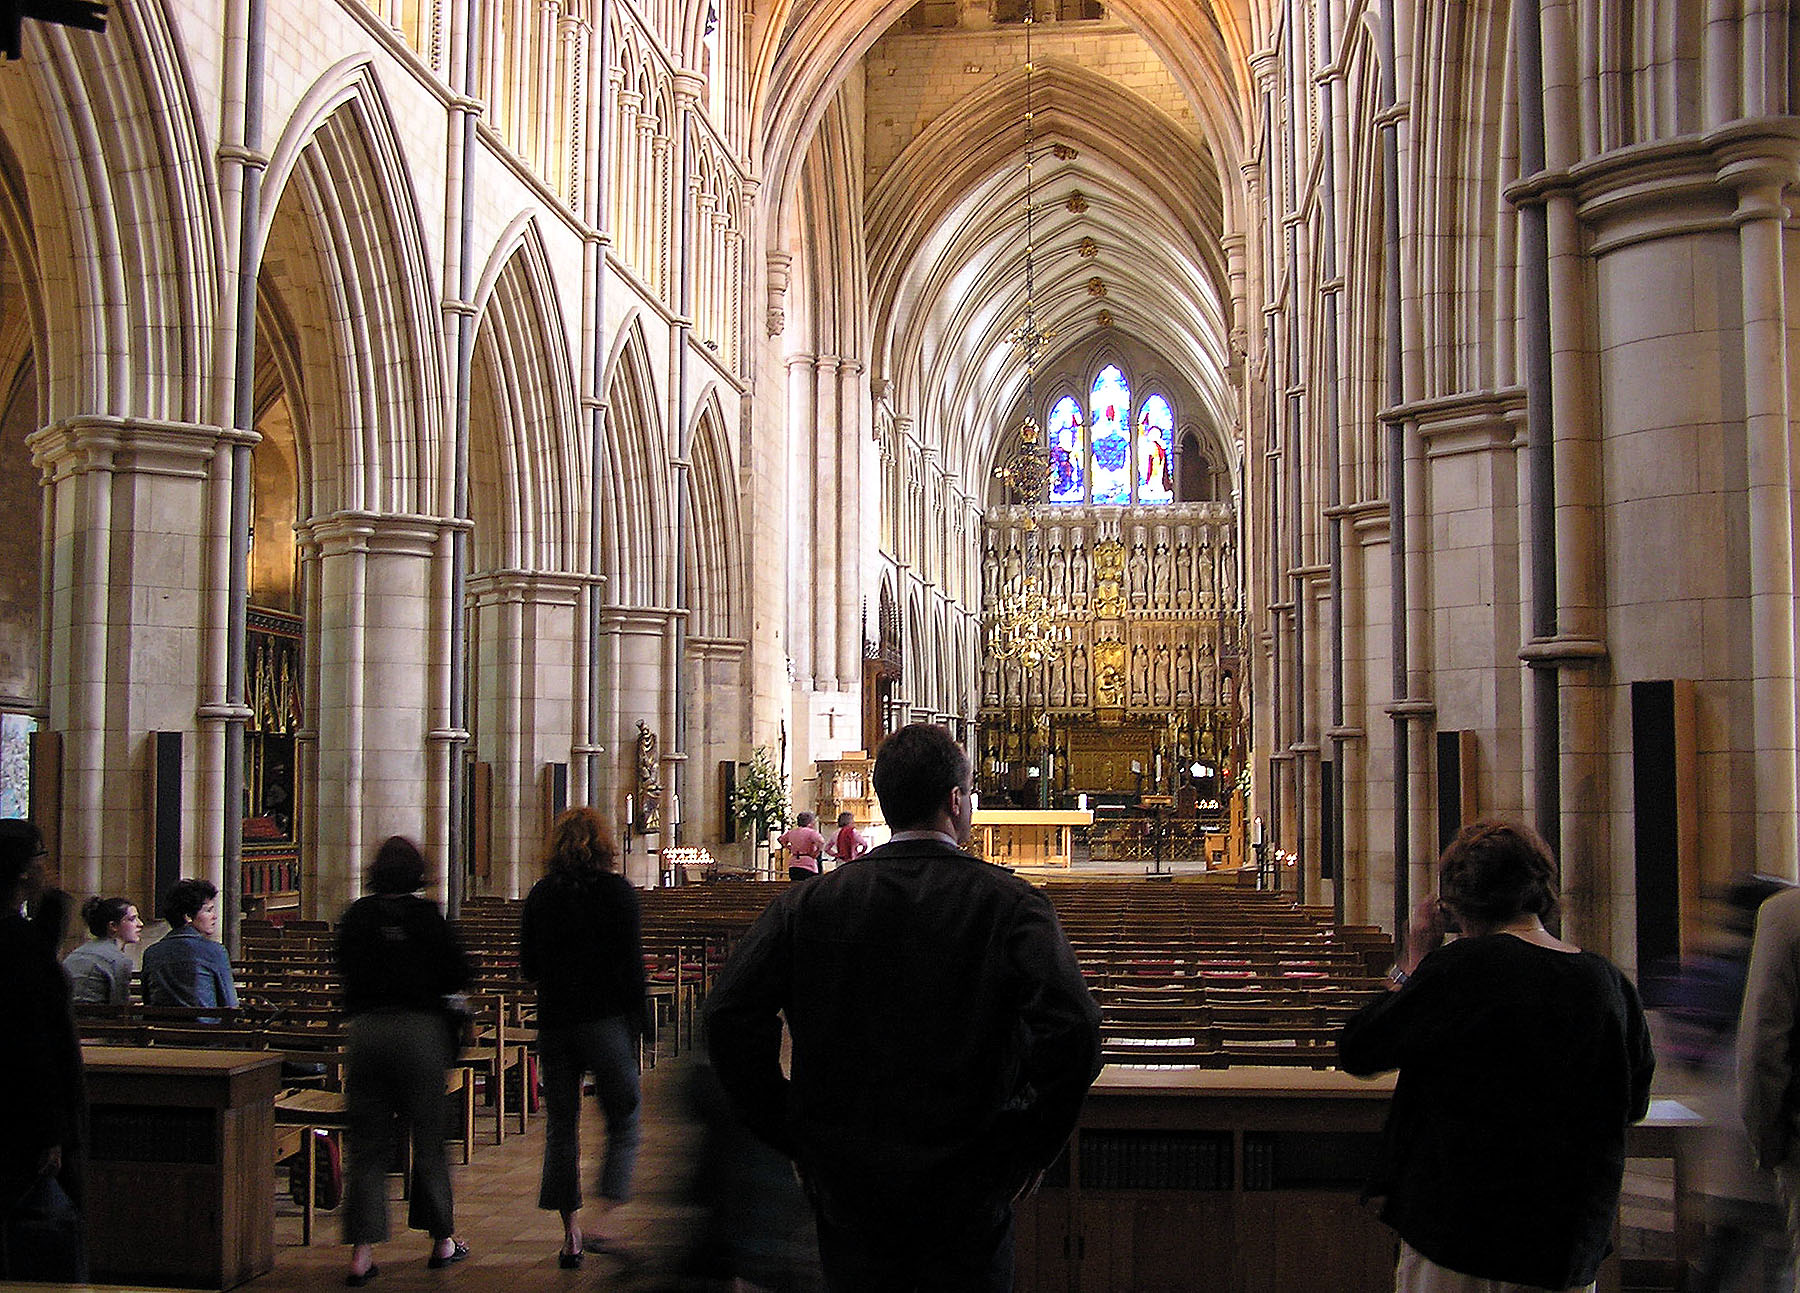 Southwark.cathedral.nave.london.arp-1.jpg